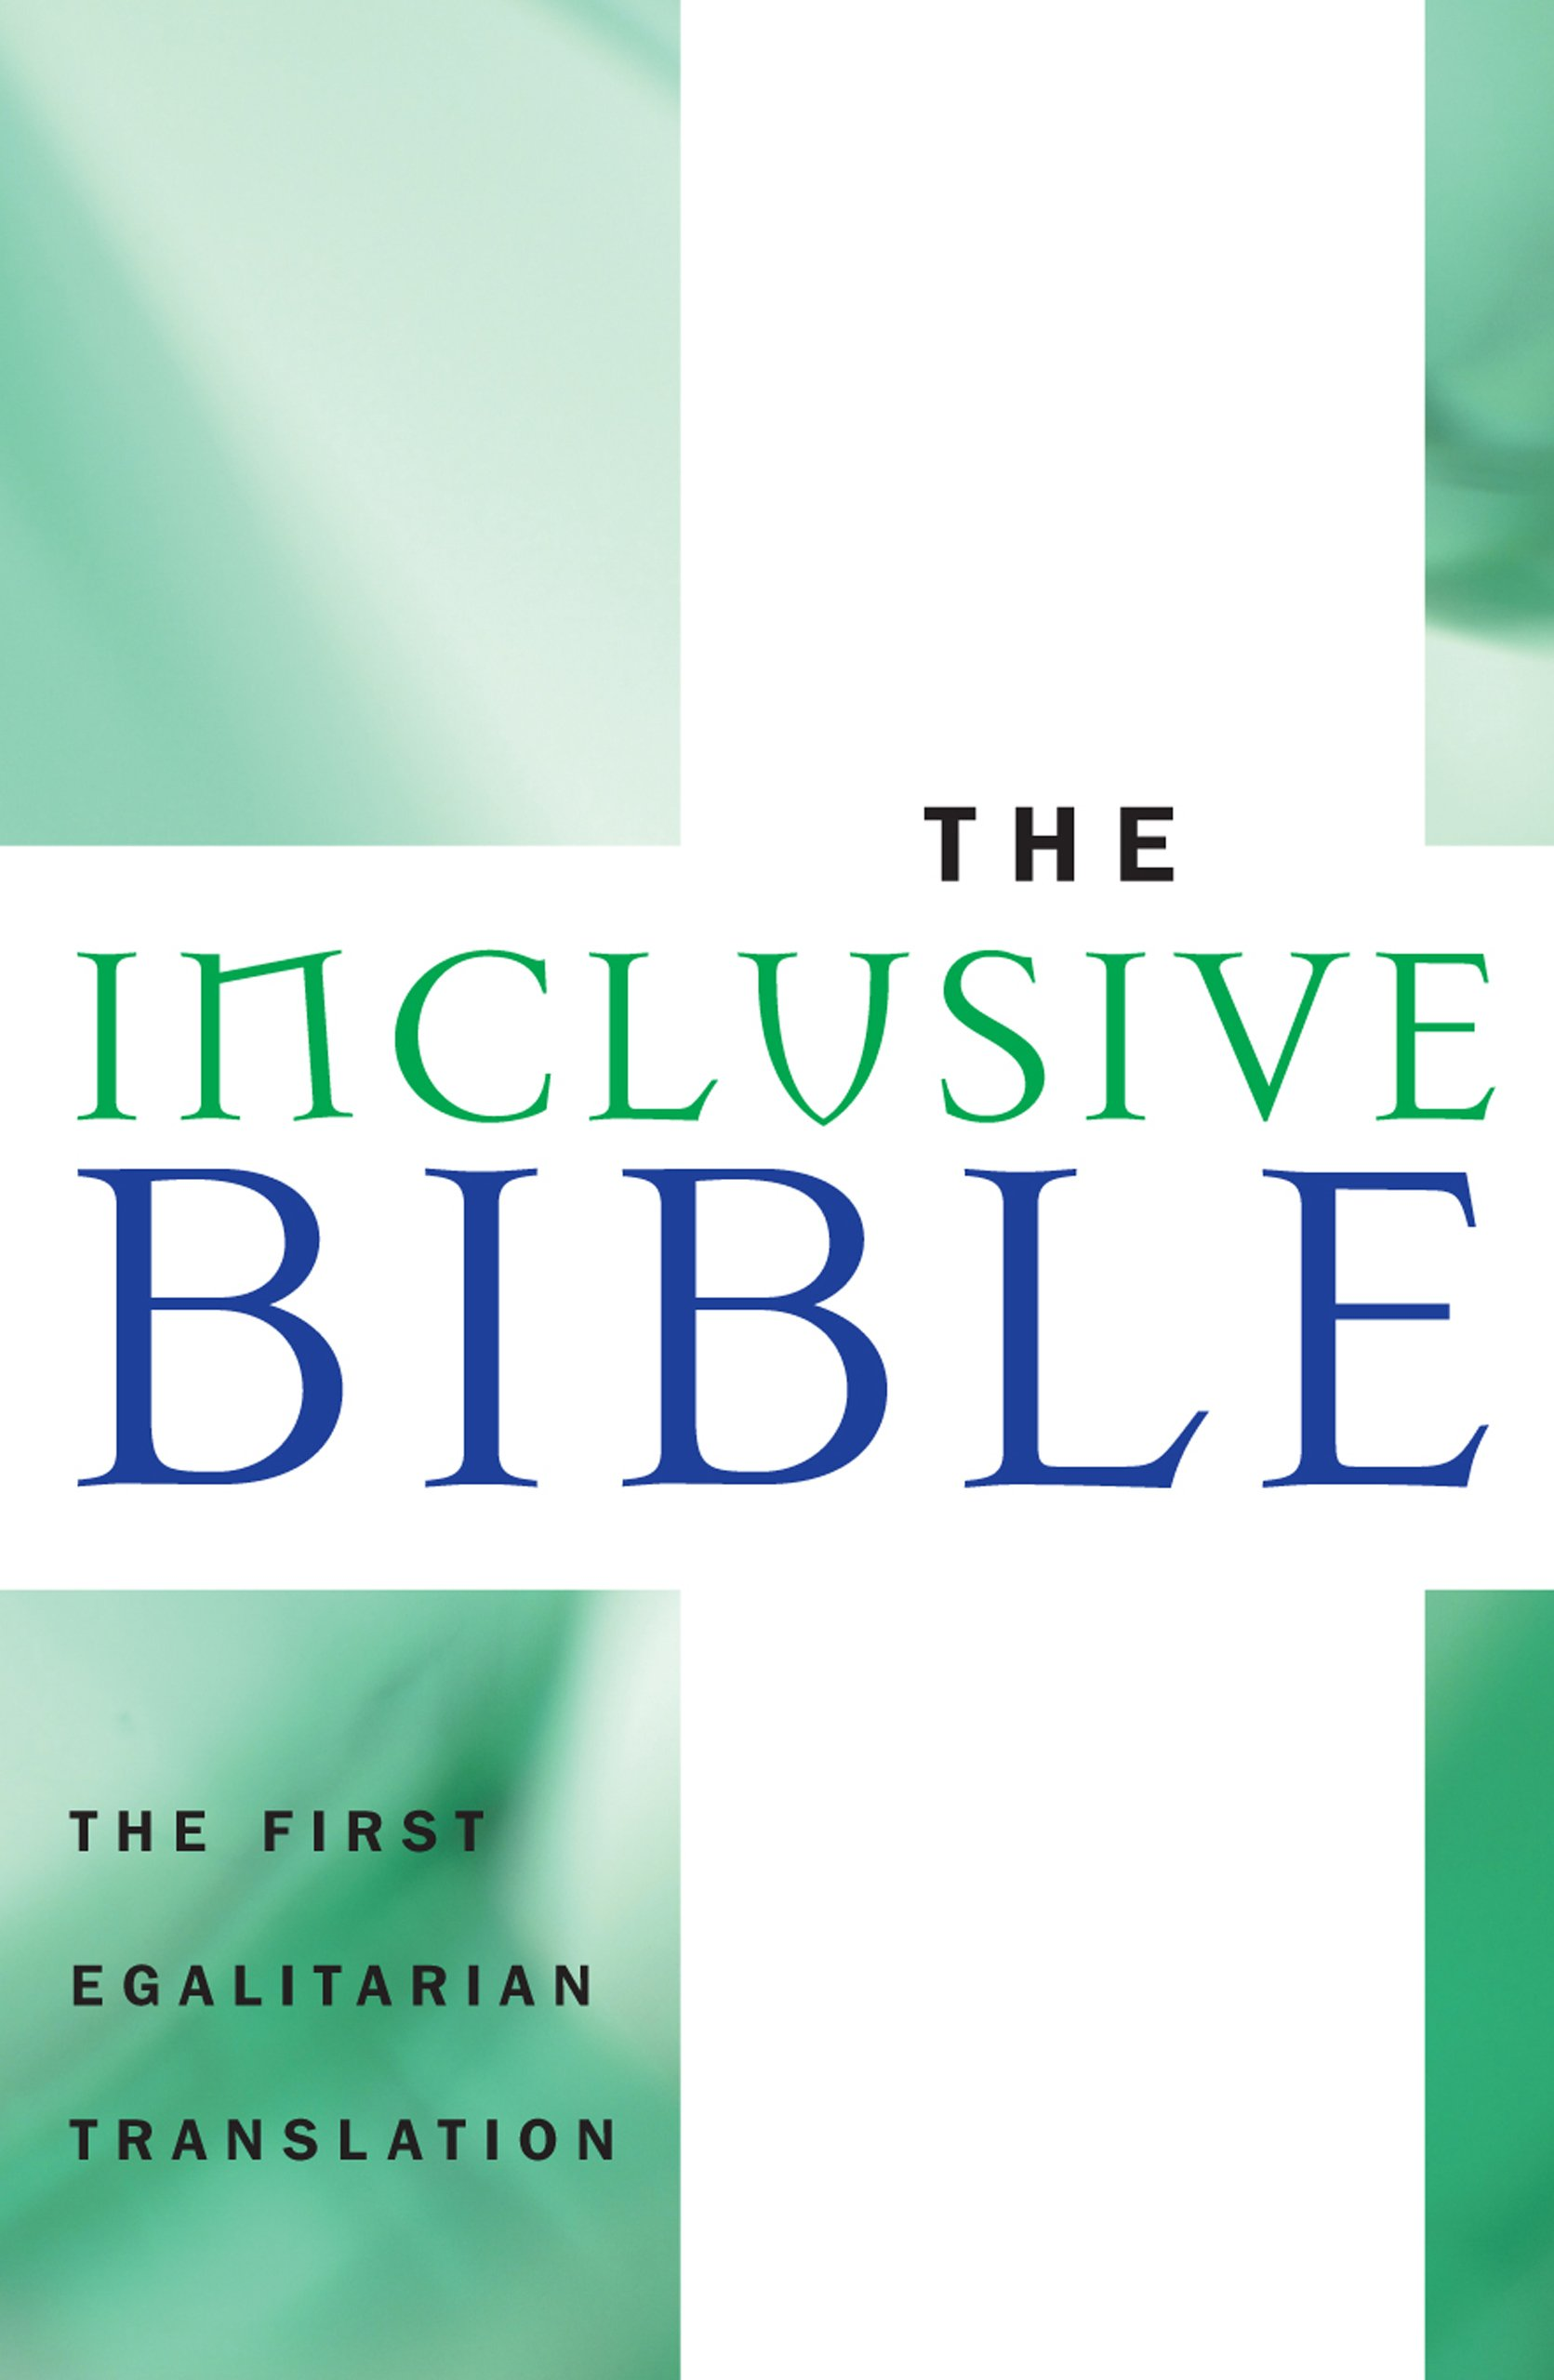 Read Online The Inclusive Bible: The First Egalitarian Translation (Sheed & Ward Books) ebook